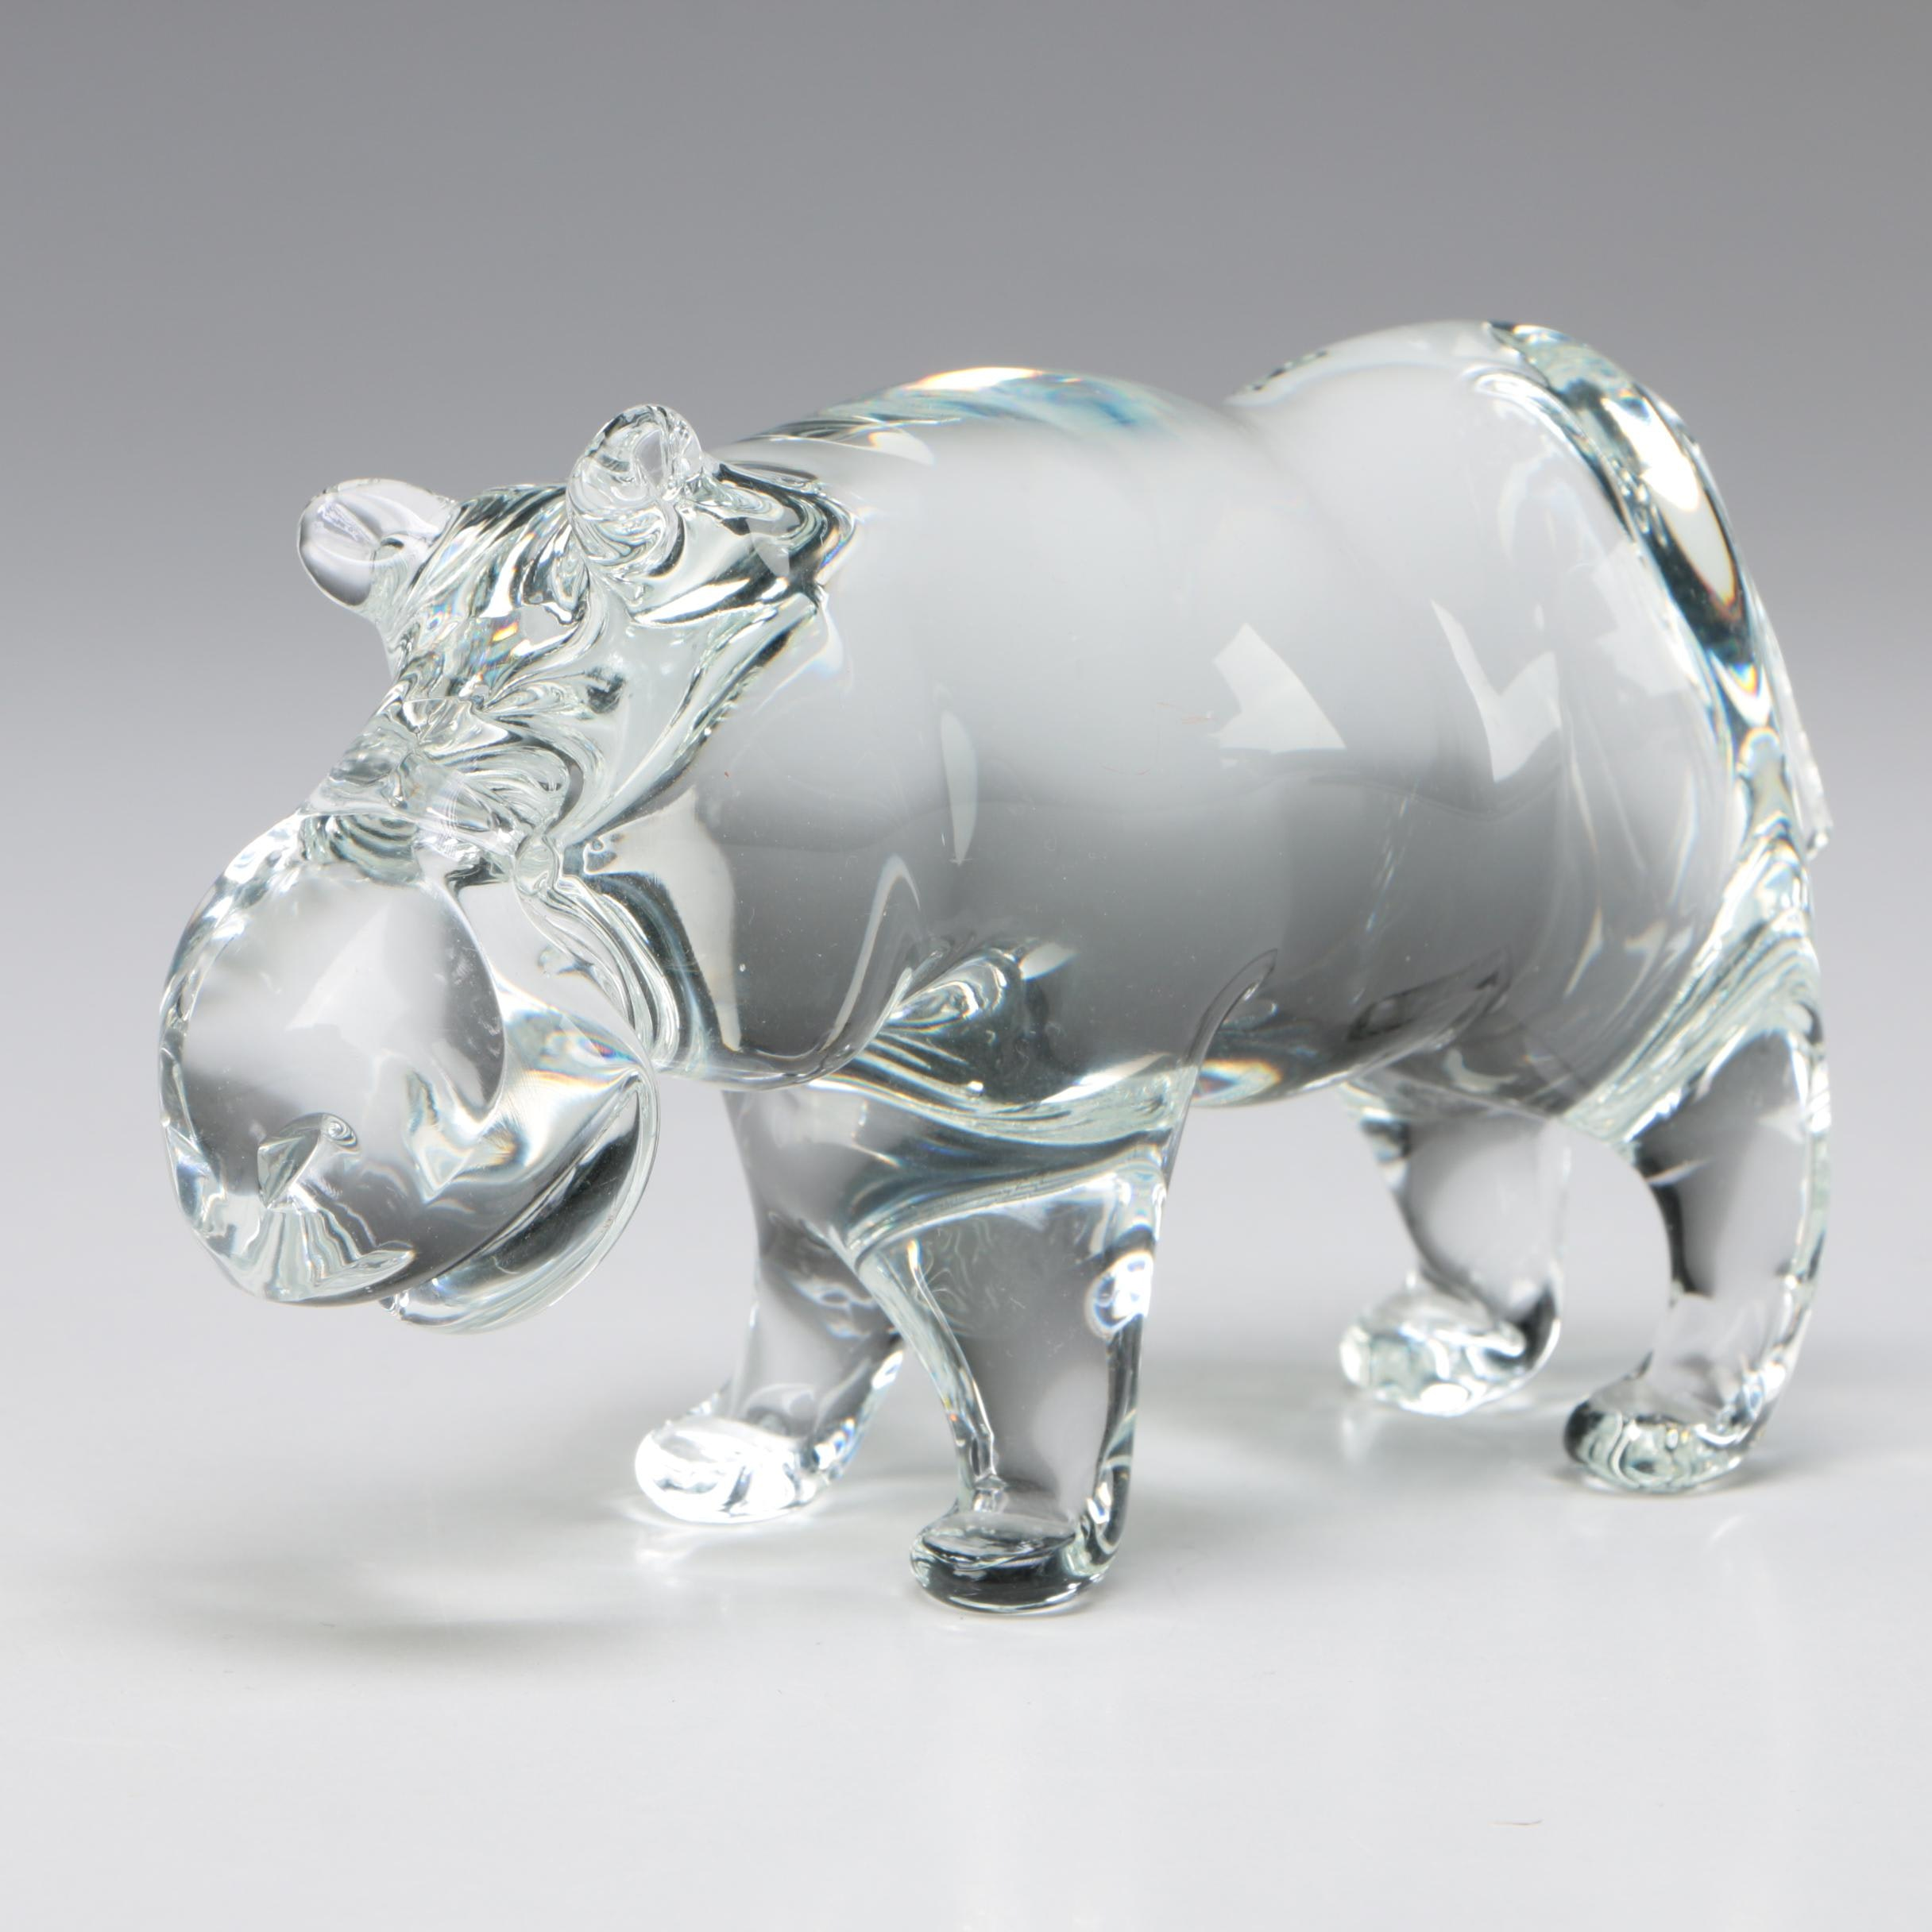 "Licio Zanetti Signed Murano Art Glass ""Hippo"" Figurine, 1956 - 1989"